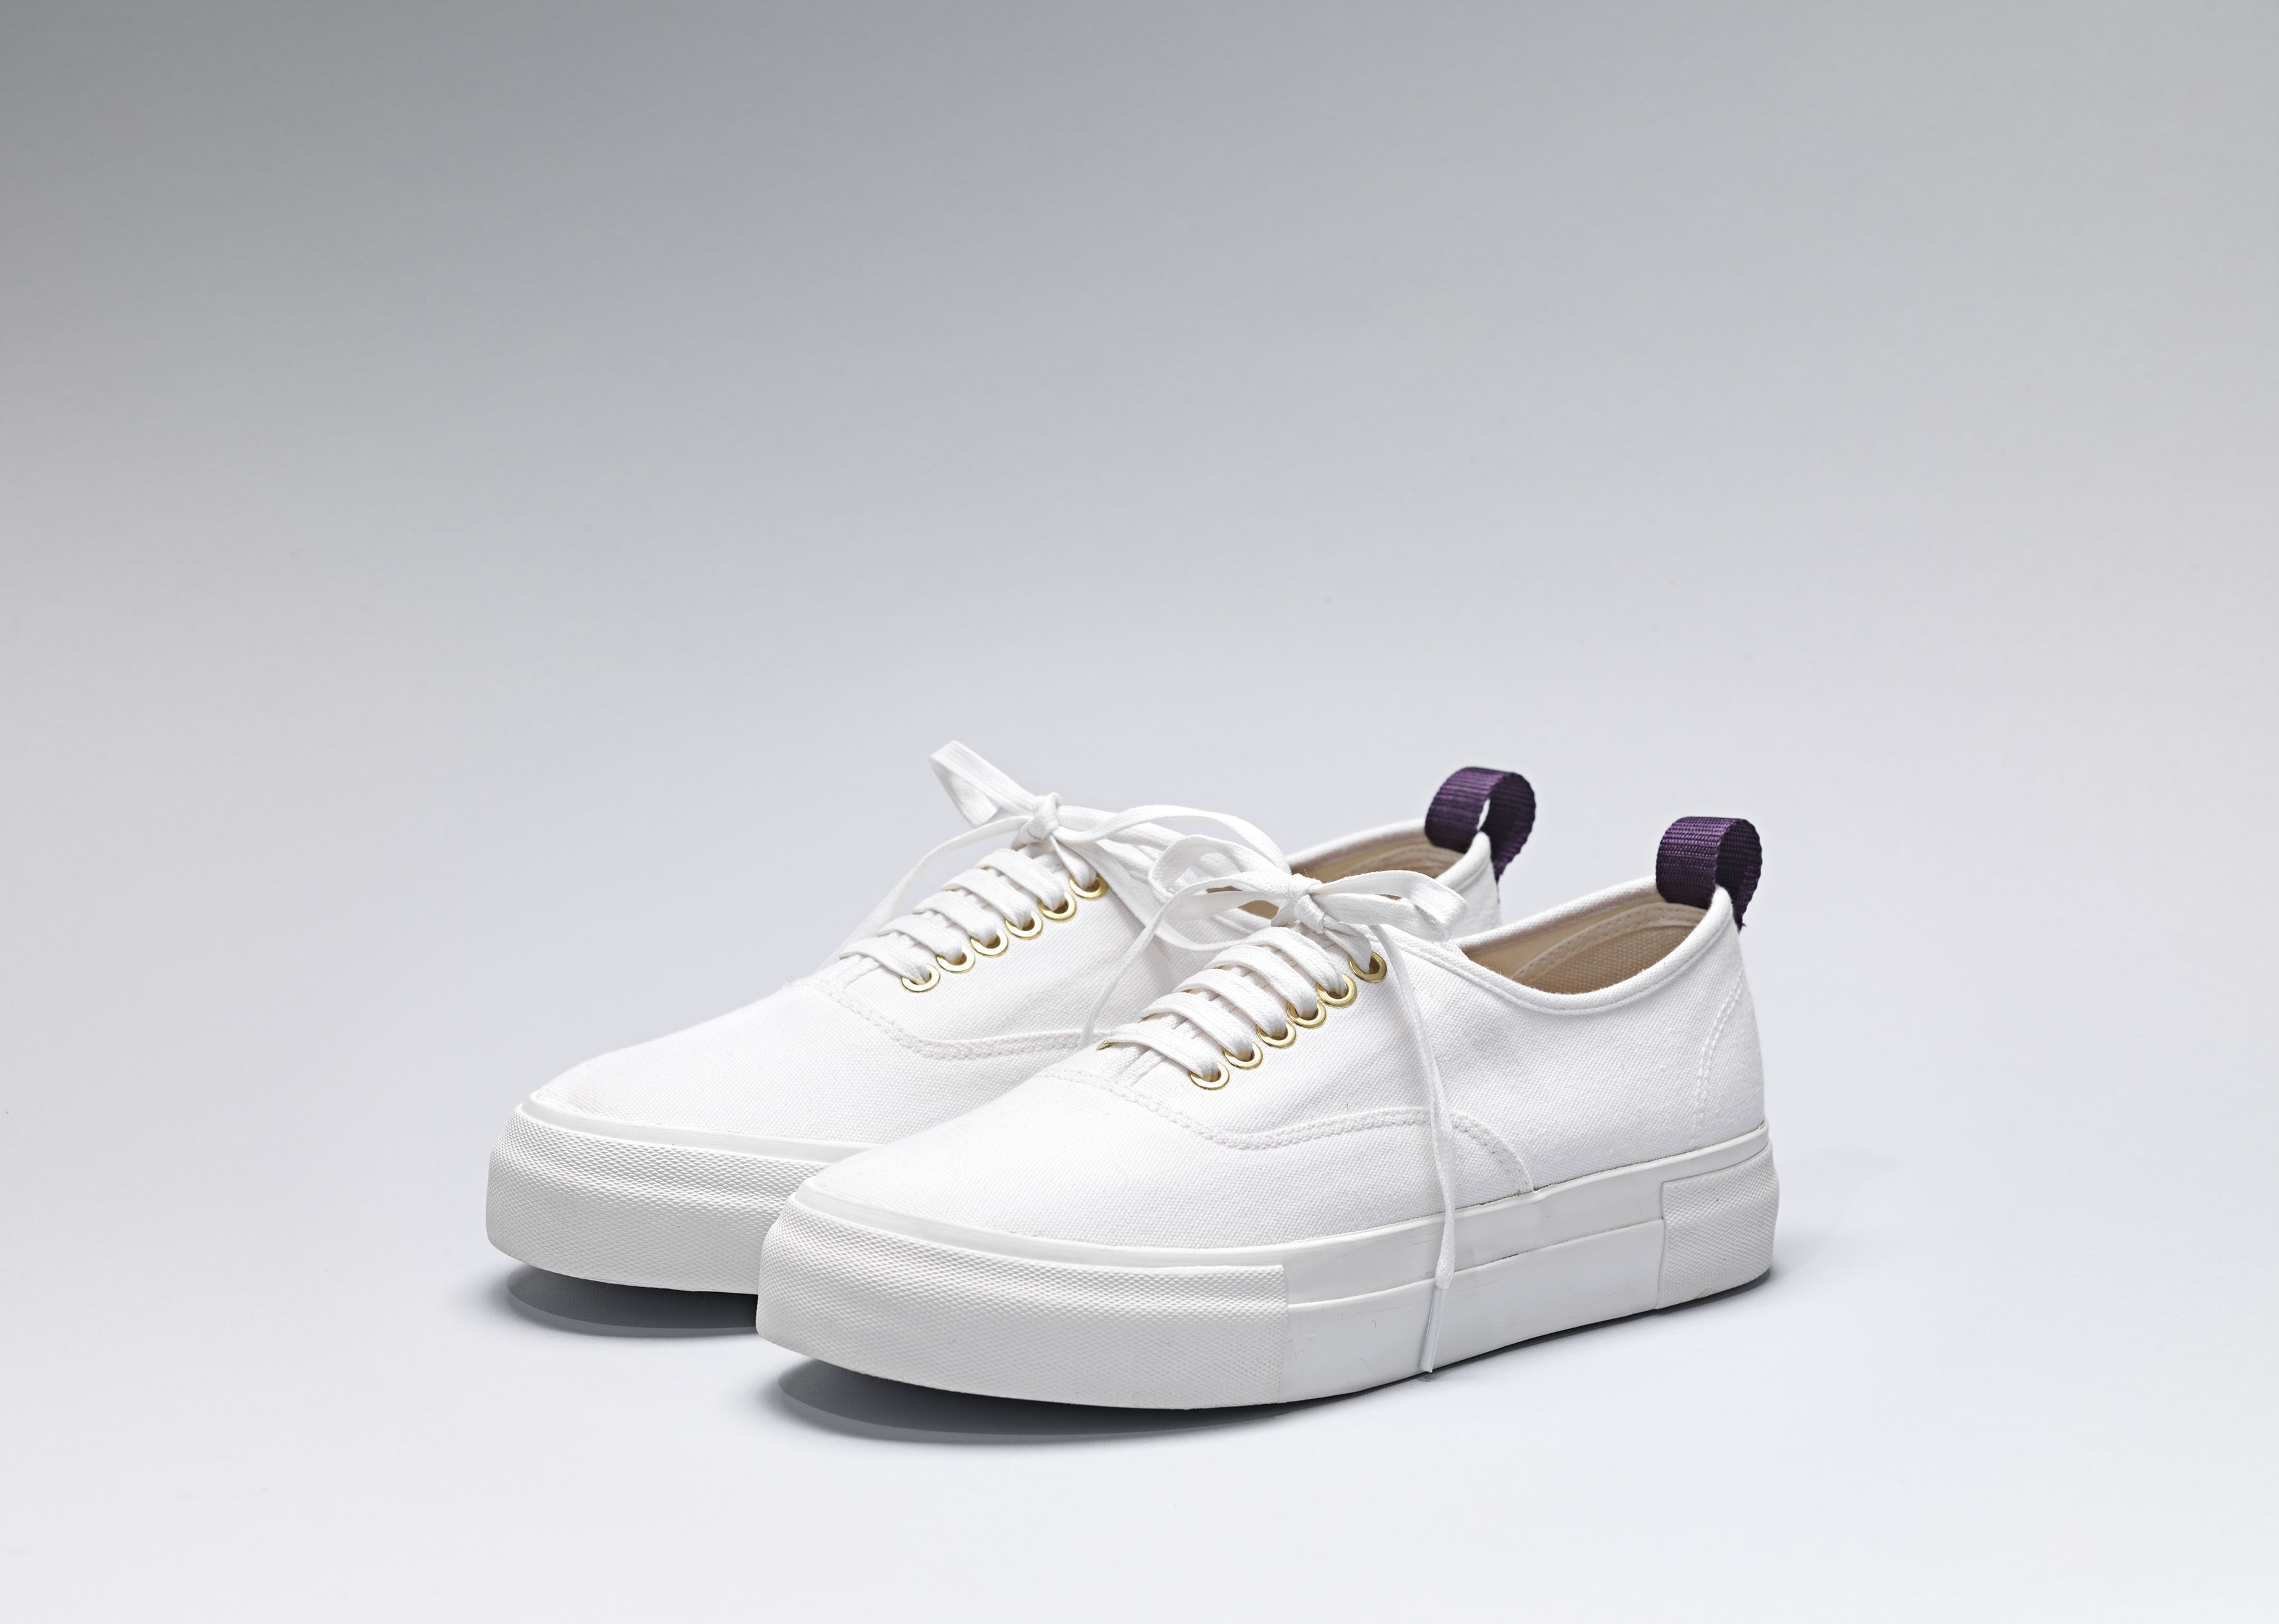 Eytys Mother Canvas in White. | White sneaker, Fall winter